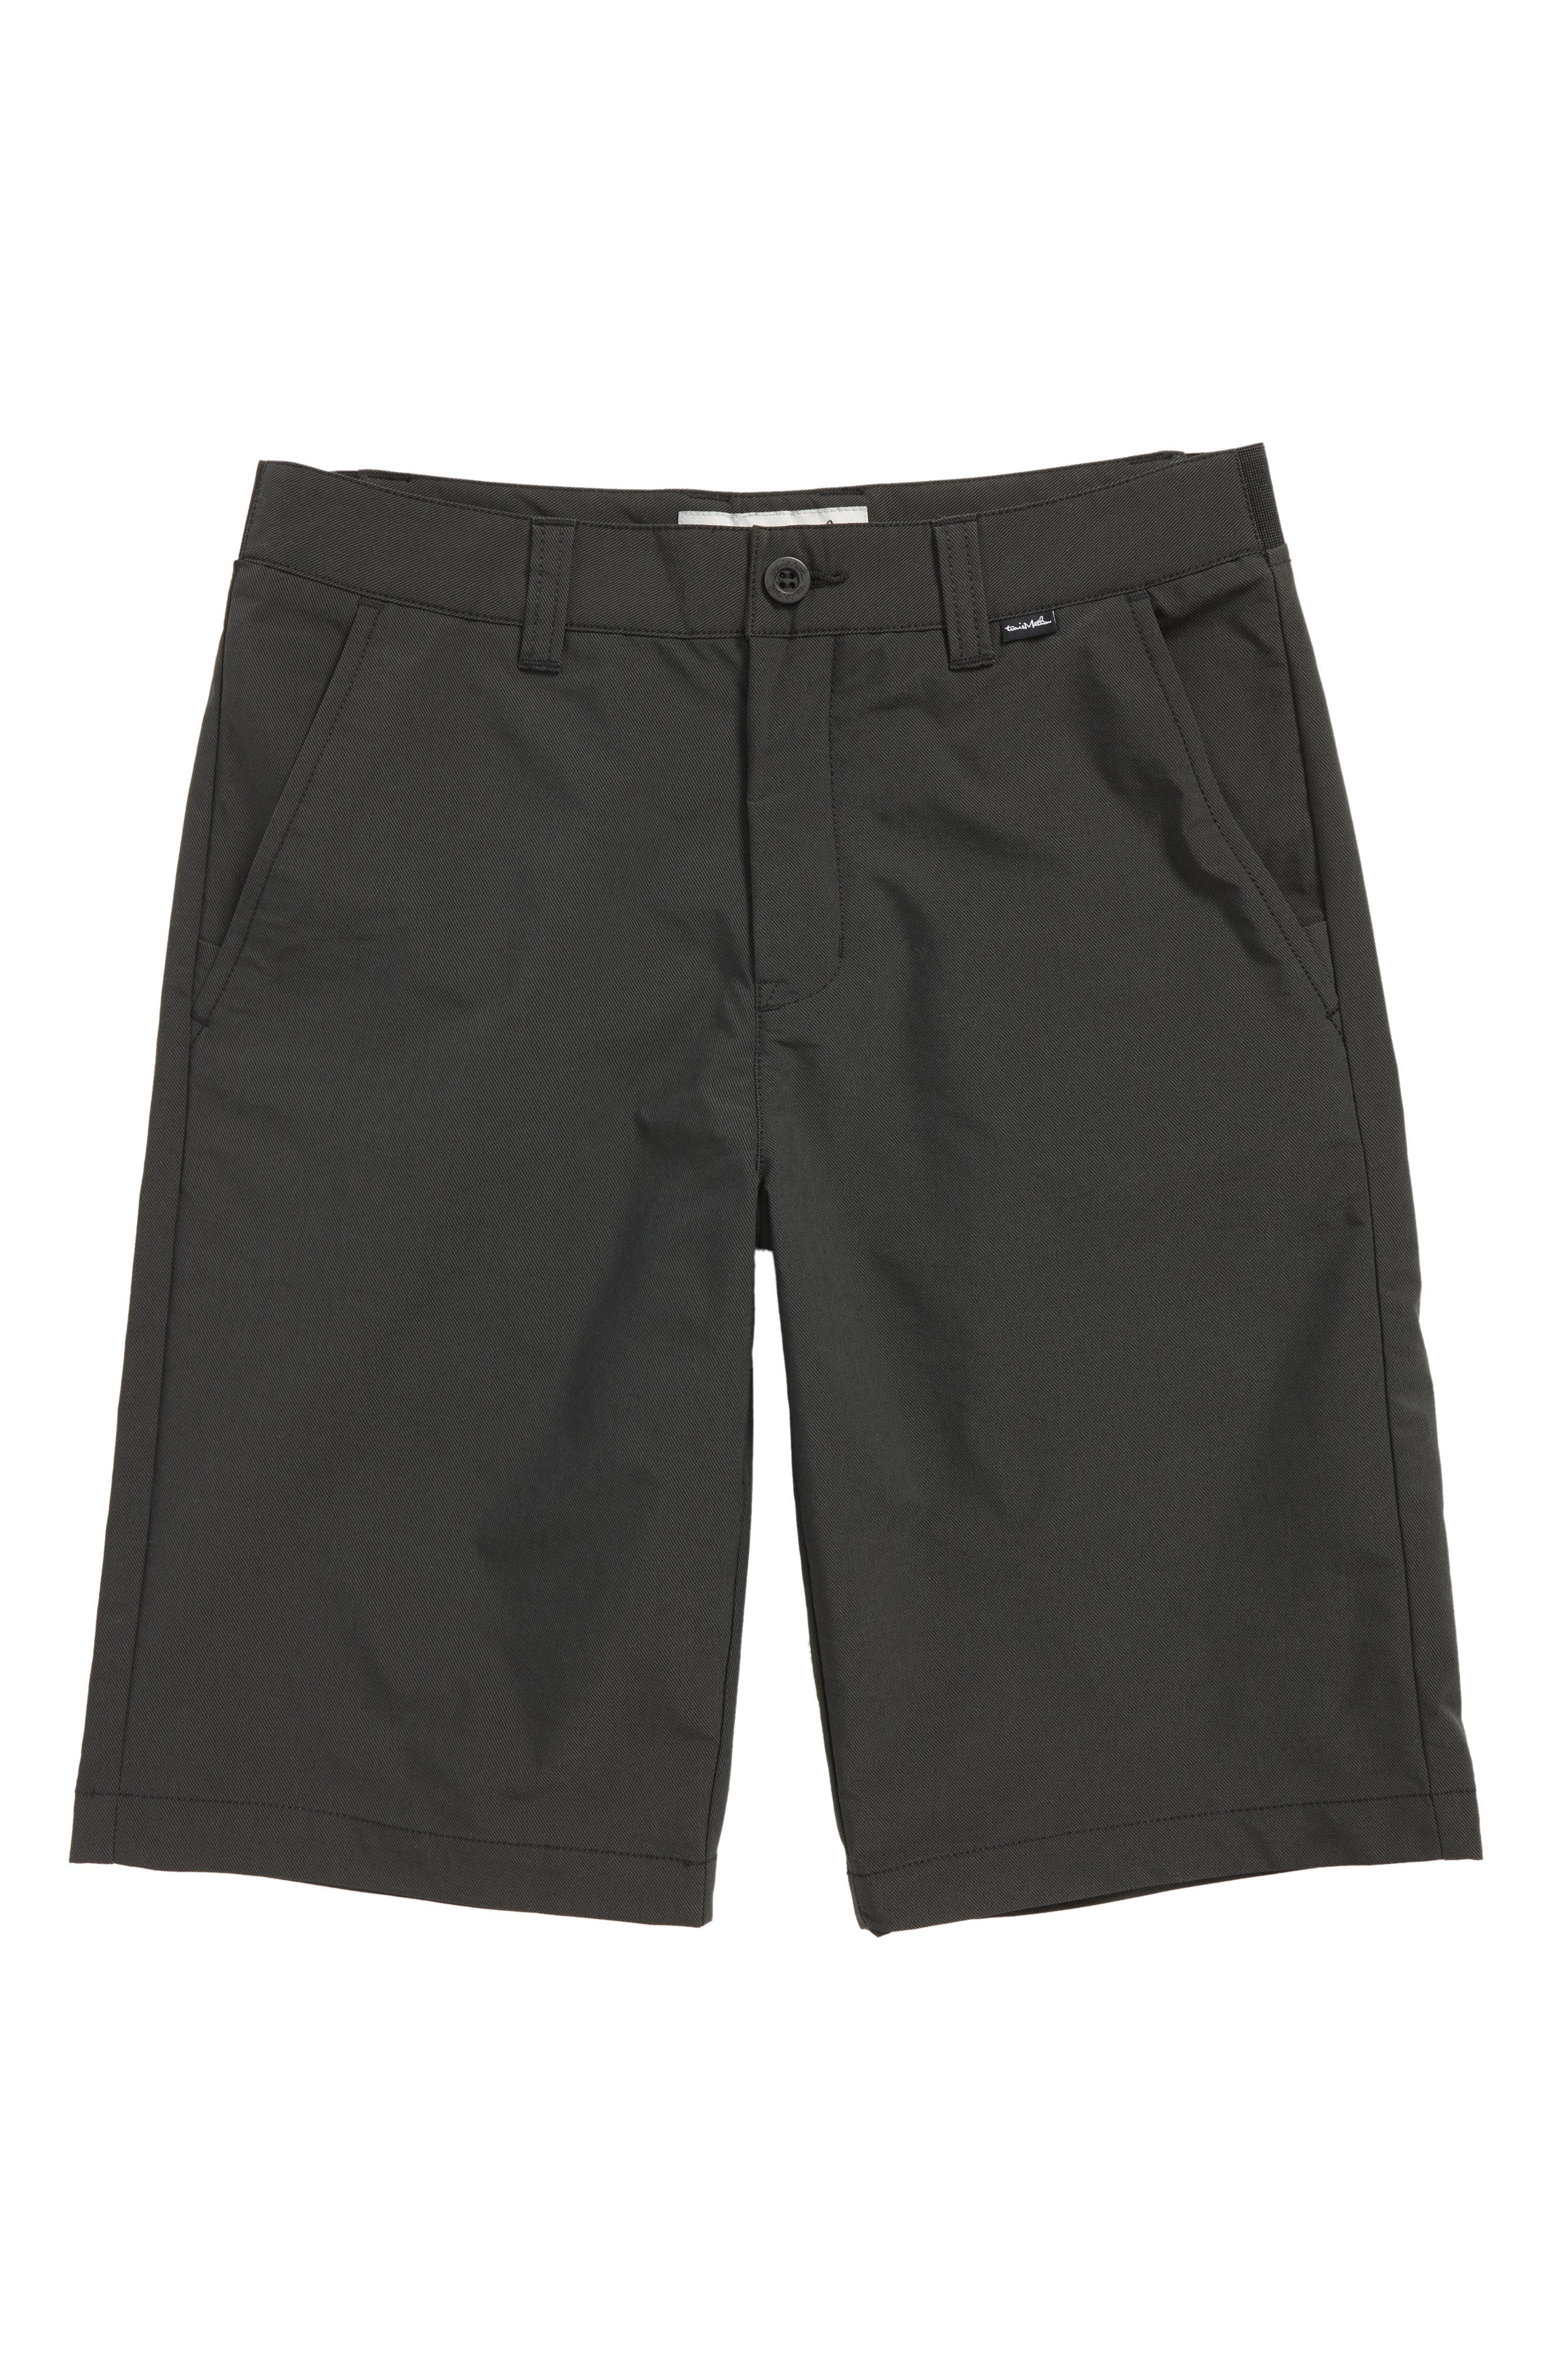 Hef Flex Shorts,                         Main,                         color, 001